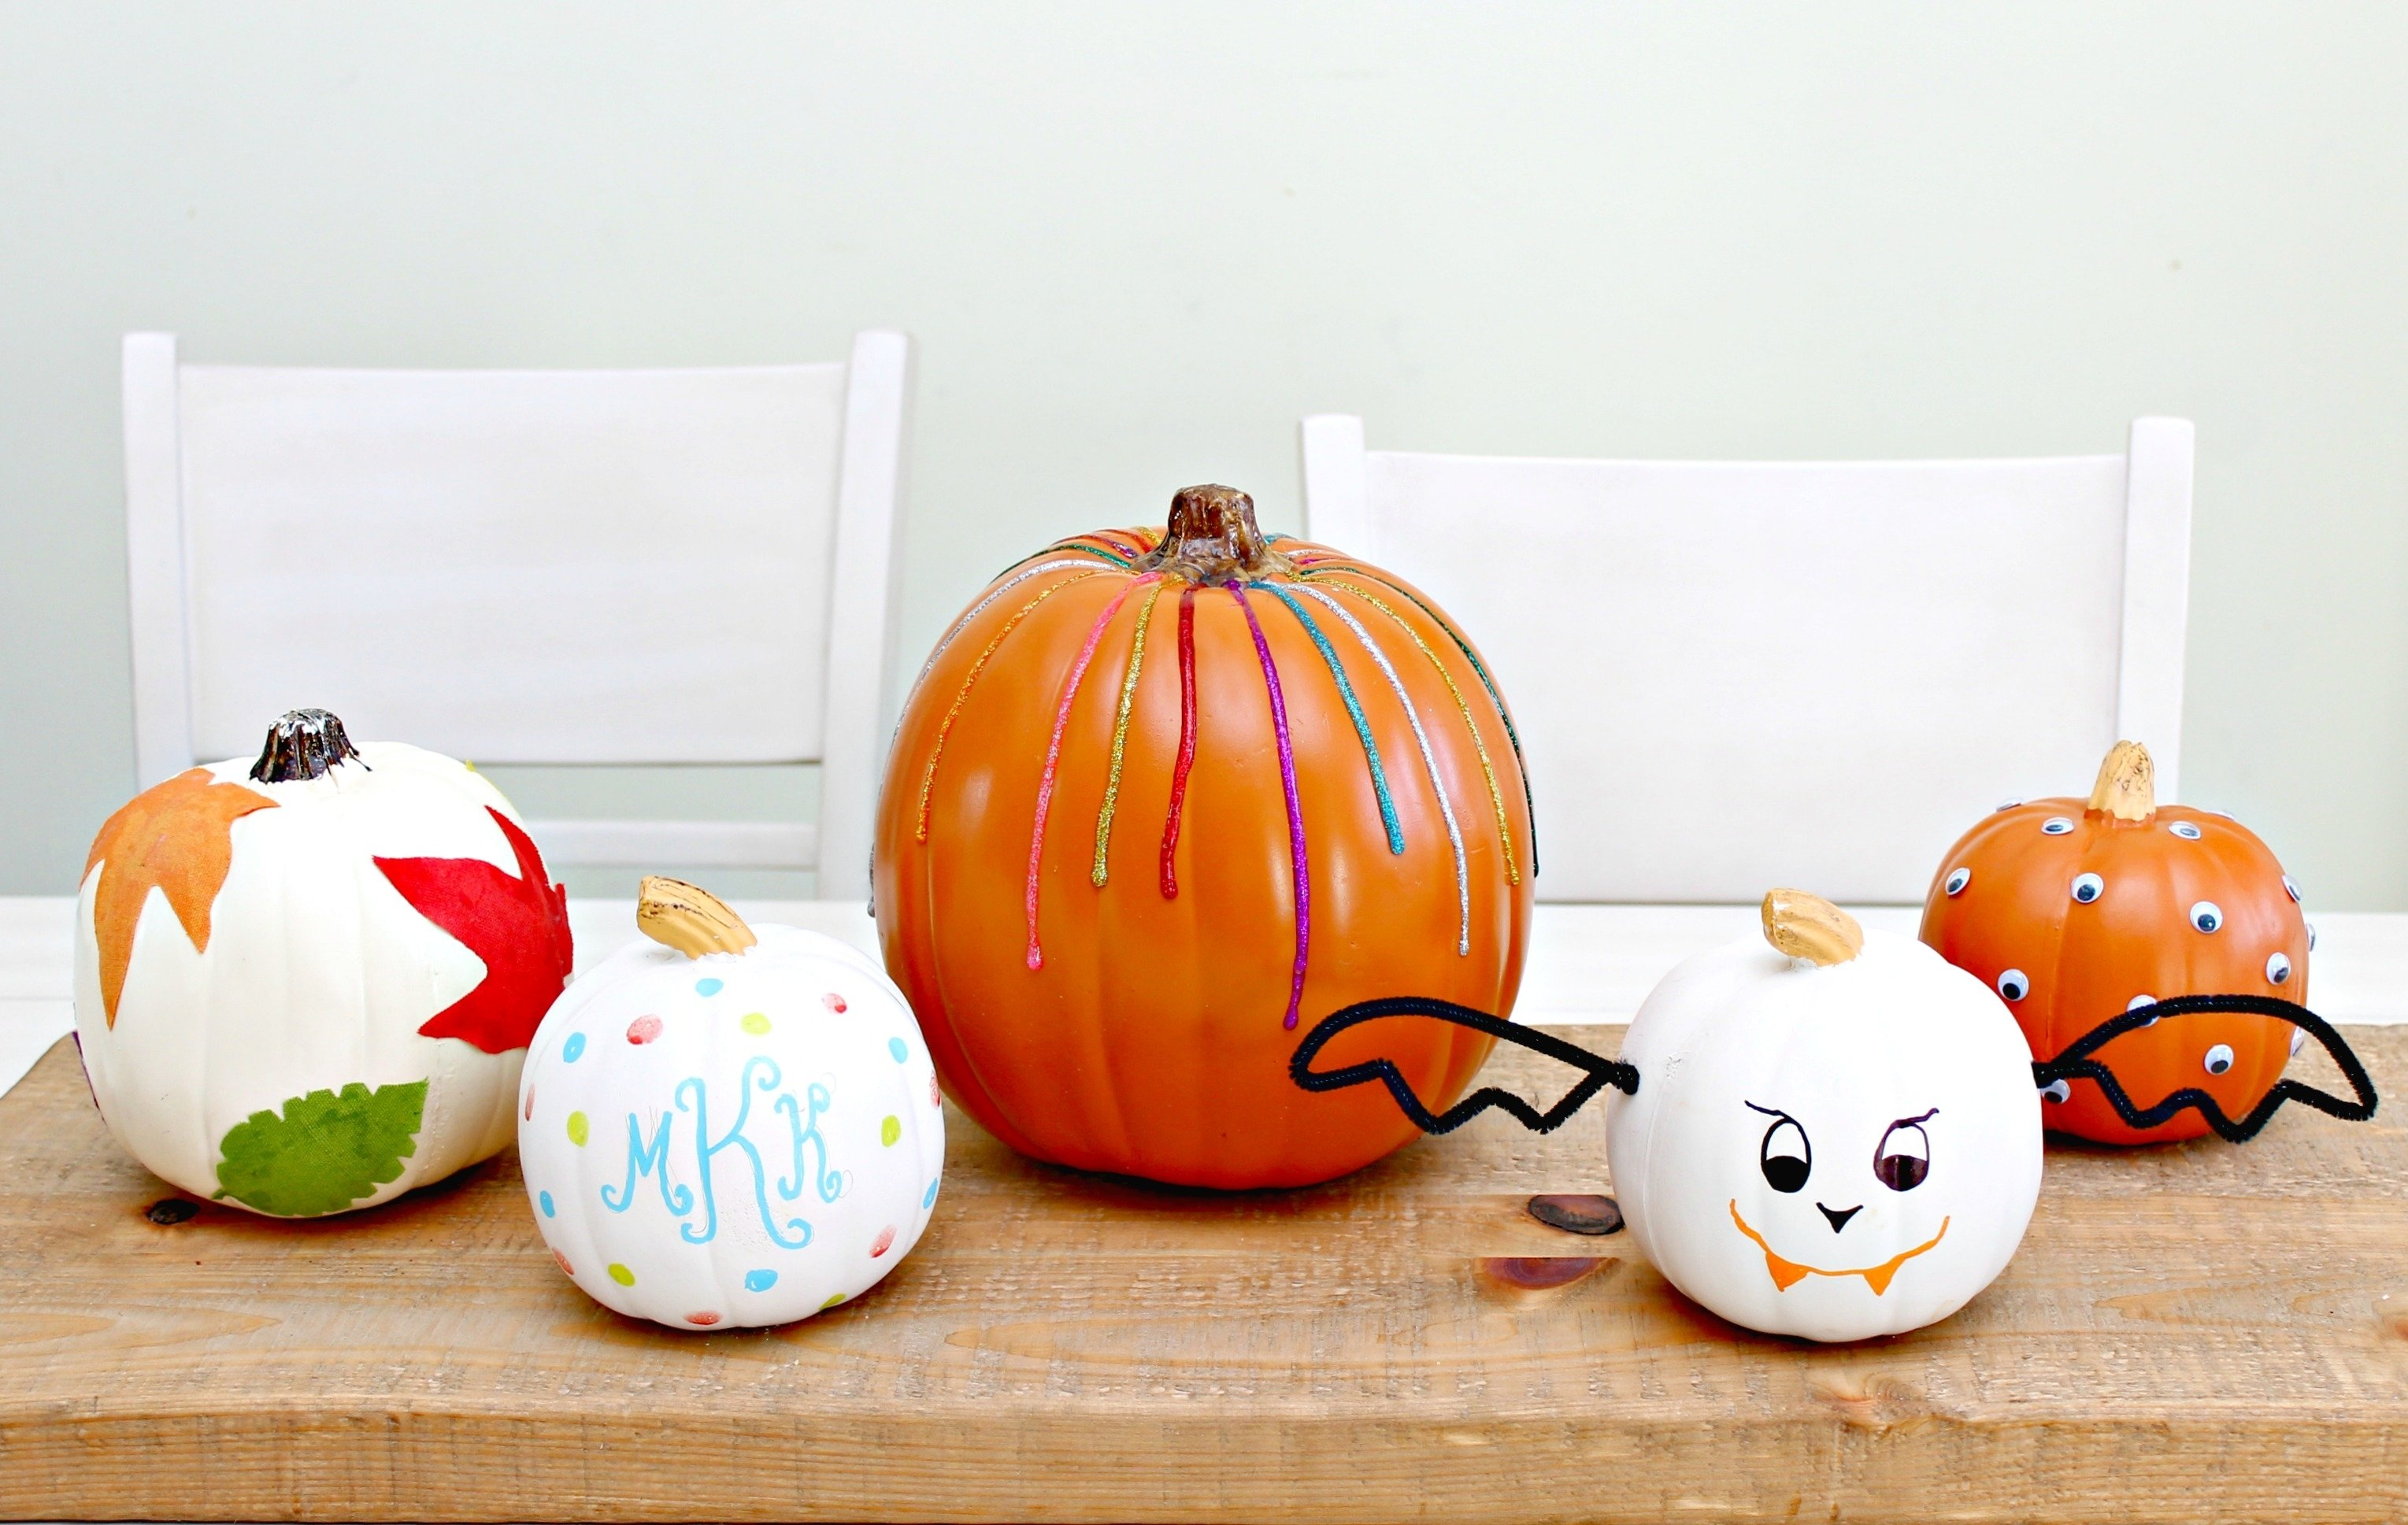 10 Unique Decorating Pumpkin Ideas Without Carving no carve pumpkin decorating ideas mom 4 real 6 2020